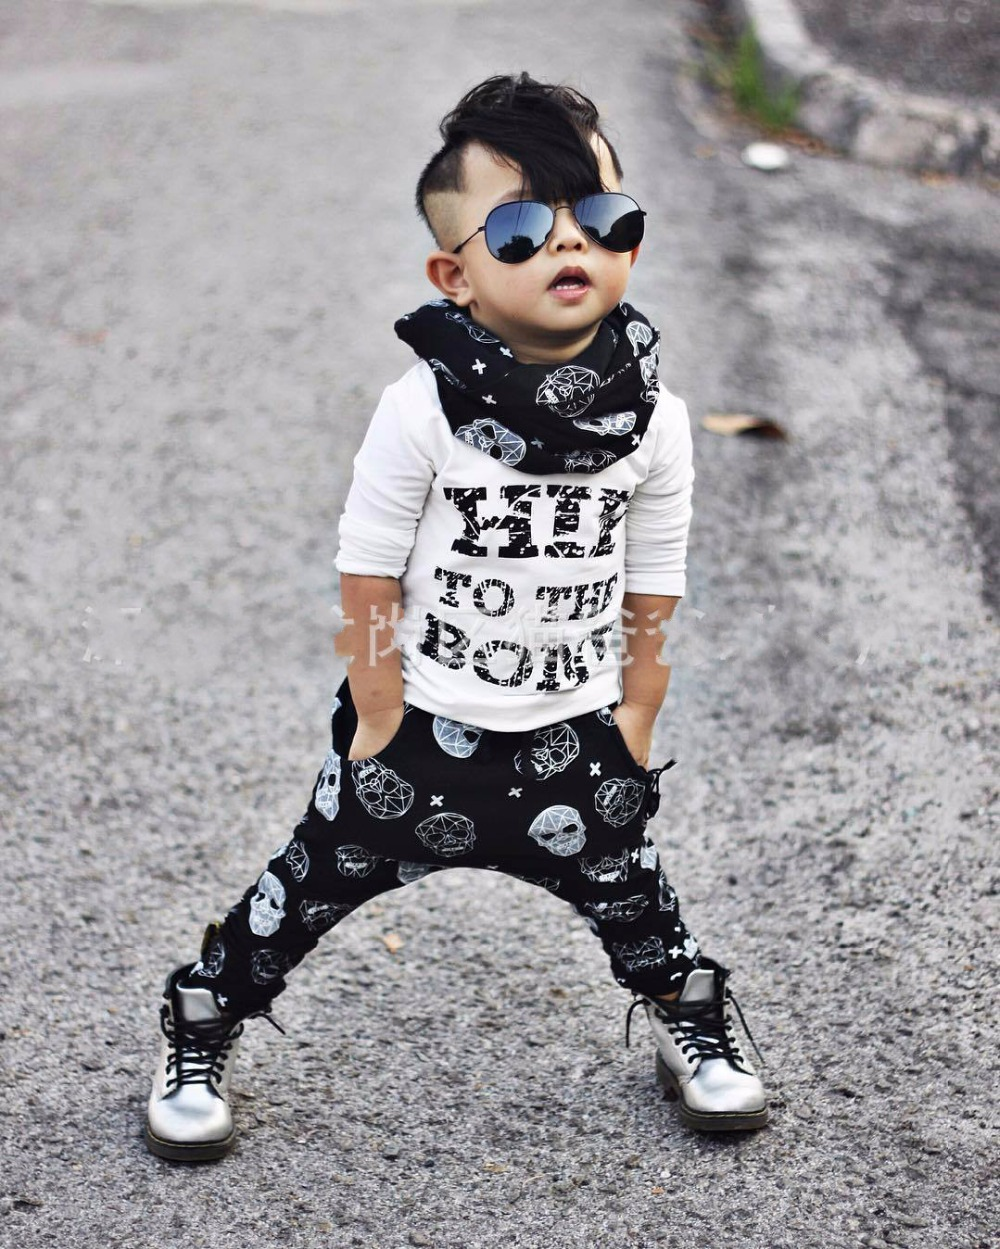 1cfebfe62d14 2018 Summer style infant clothes sets baby boy cotton fashion letters  printed Long sleeves T shirt + trousers 2 pcs baby boy Set-in Clothing Sets  from ...